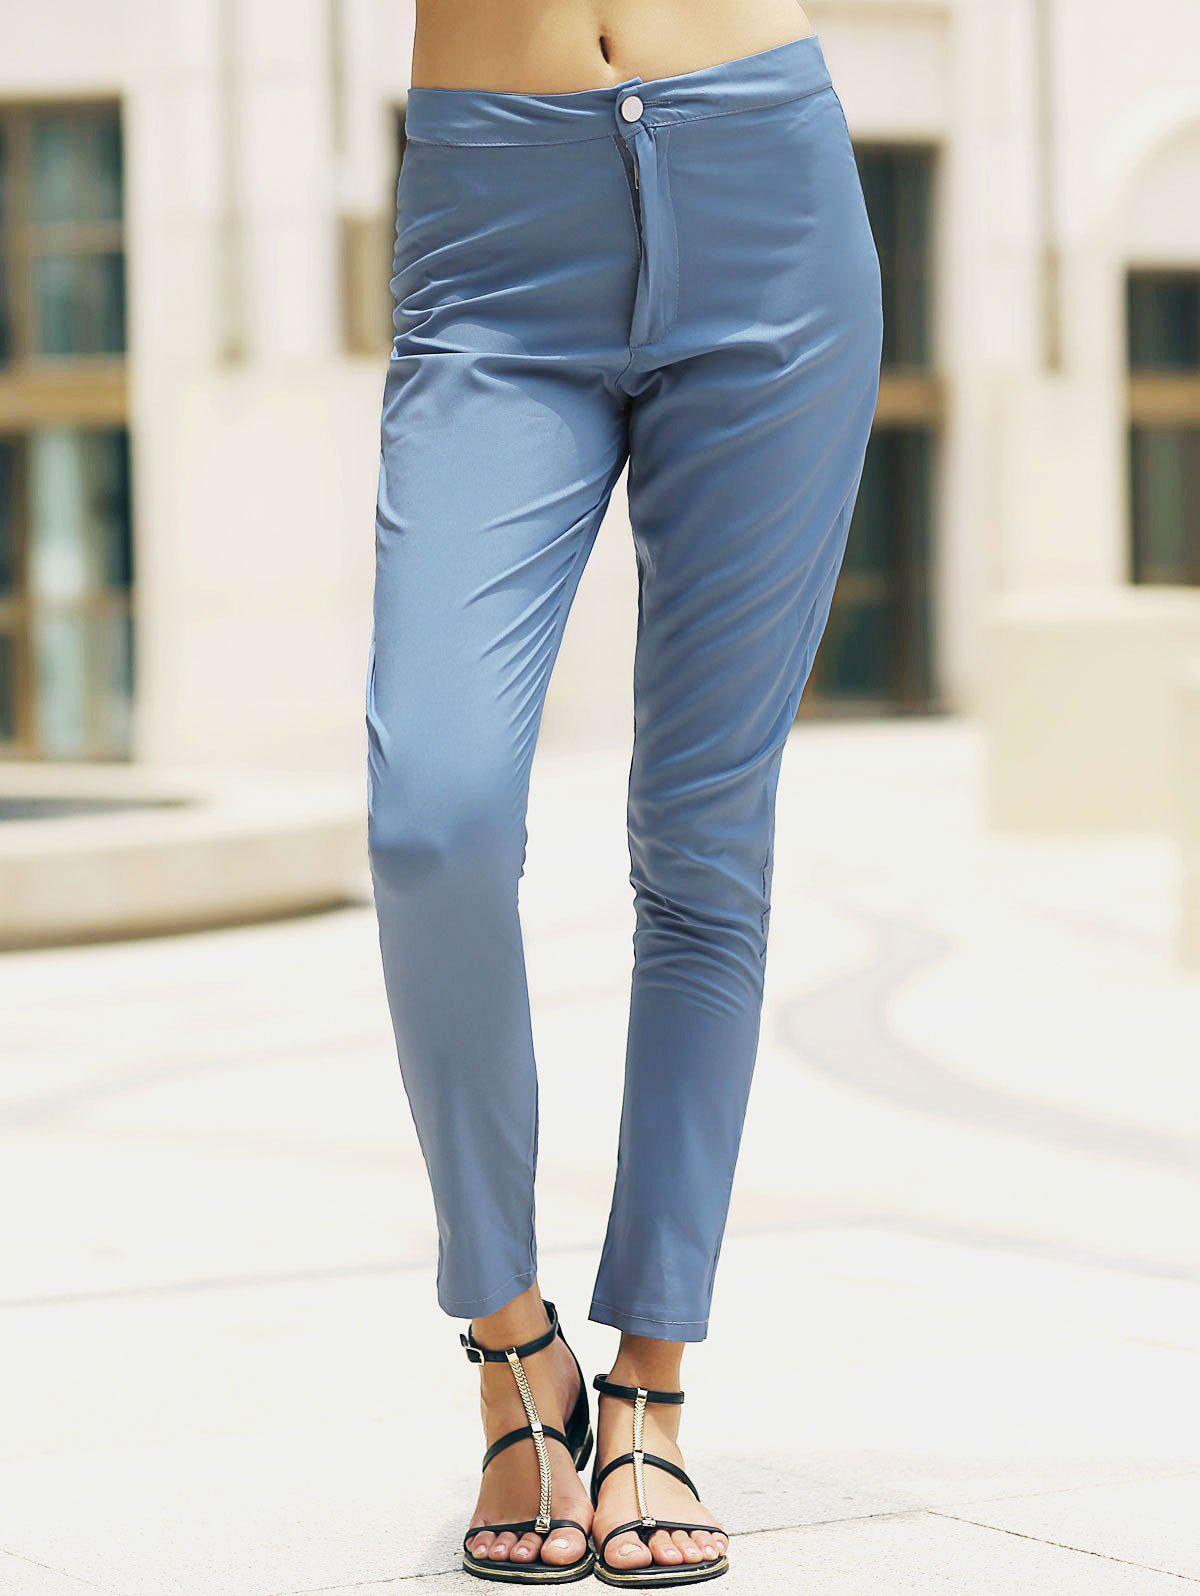 Fashionable Solid Color Skinny High-Waisted Women's Jeans, AZURE ...